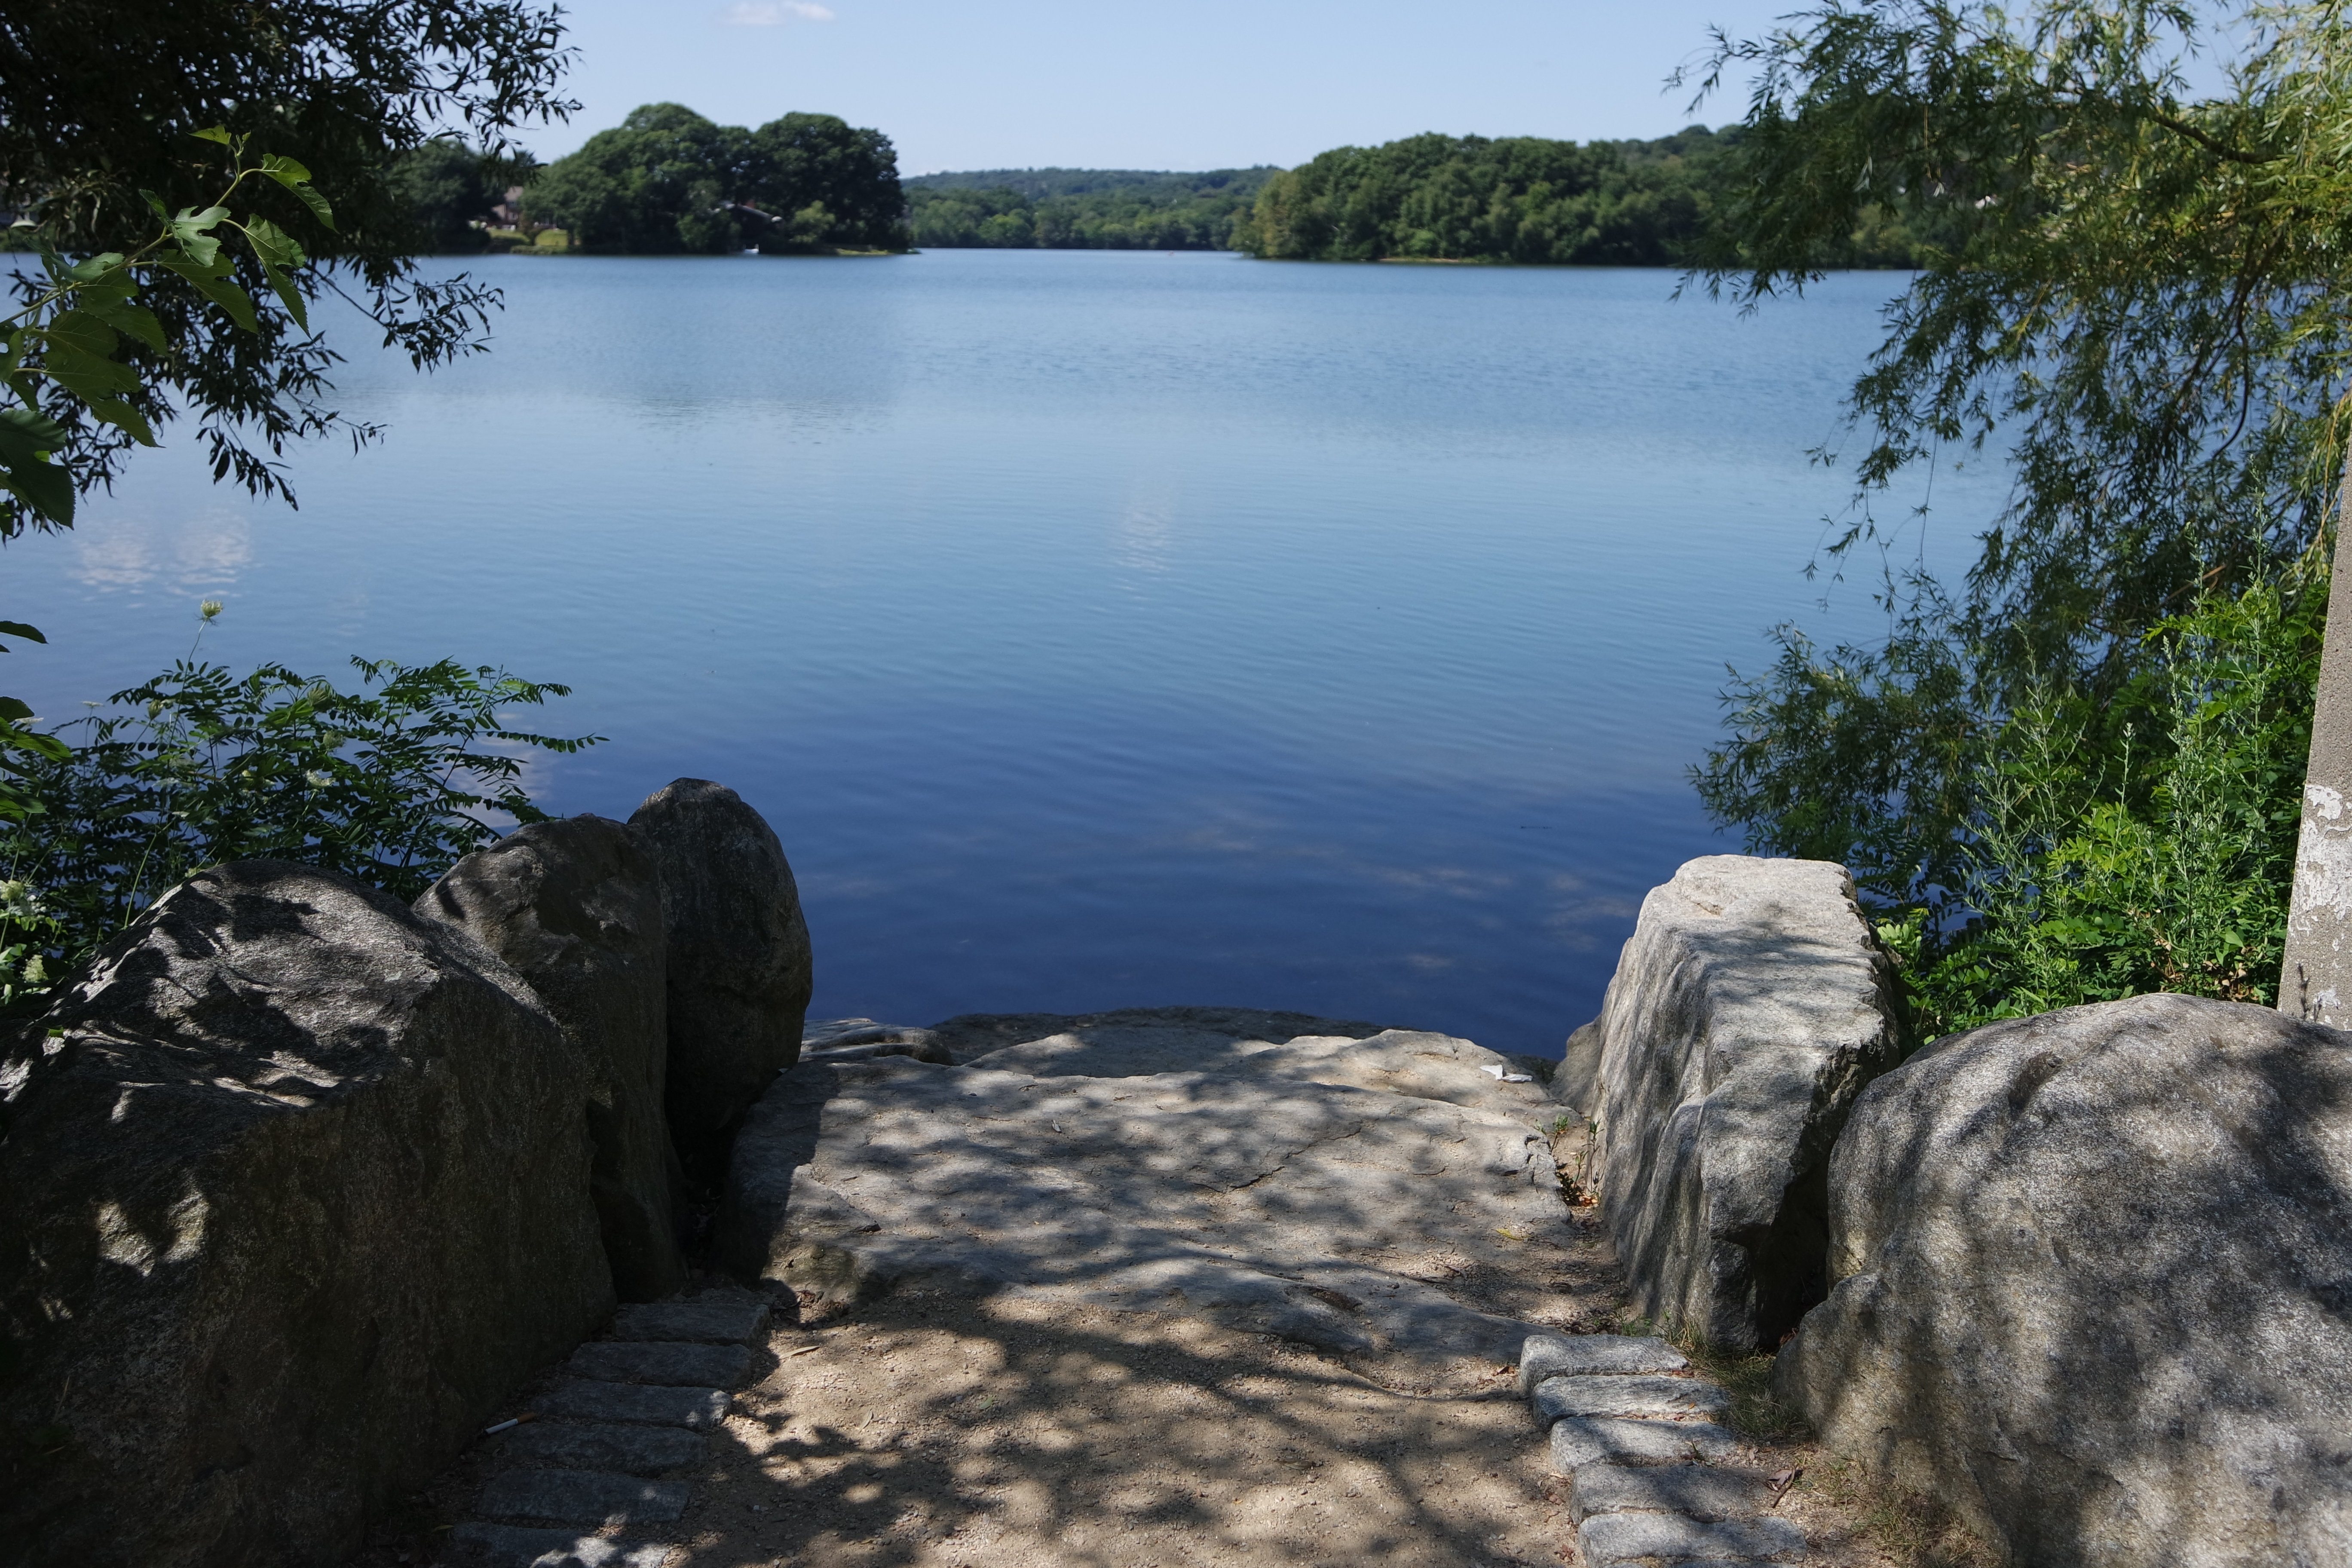 A sample photo of a lake shot by the Samsung NX3000.